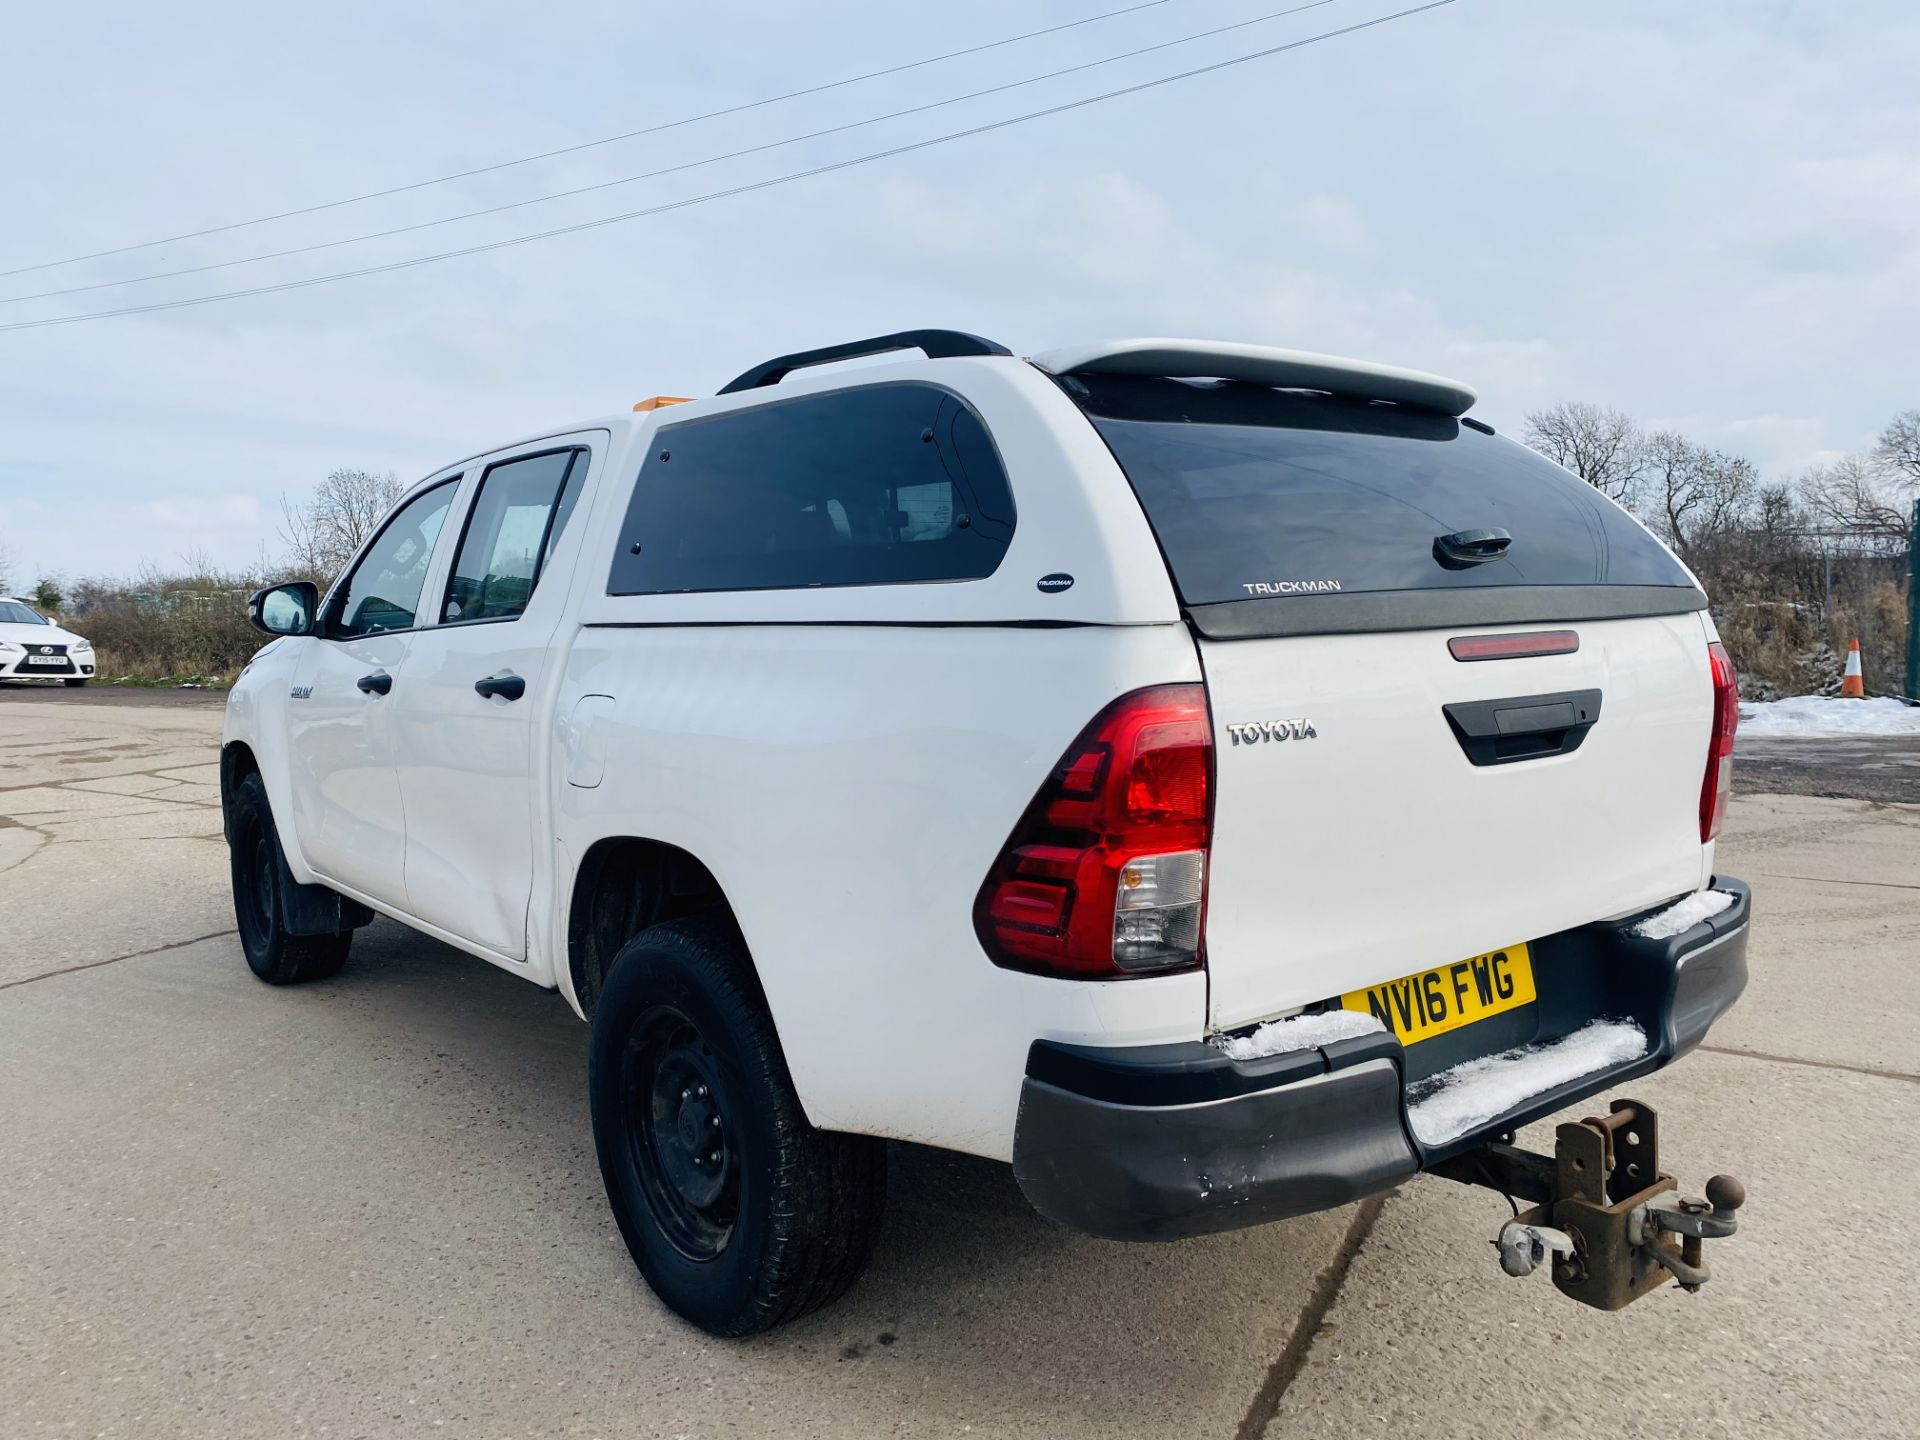 """TOYOTA HILUX """"ACTIVE"""" DOUBLE CAB PICK-UP (2016 - NEW MODEL) 1 OWNER - AIR CON - REAR CANOPY- LOOK - Image 5 of 19"""